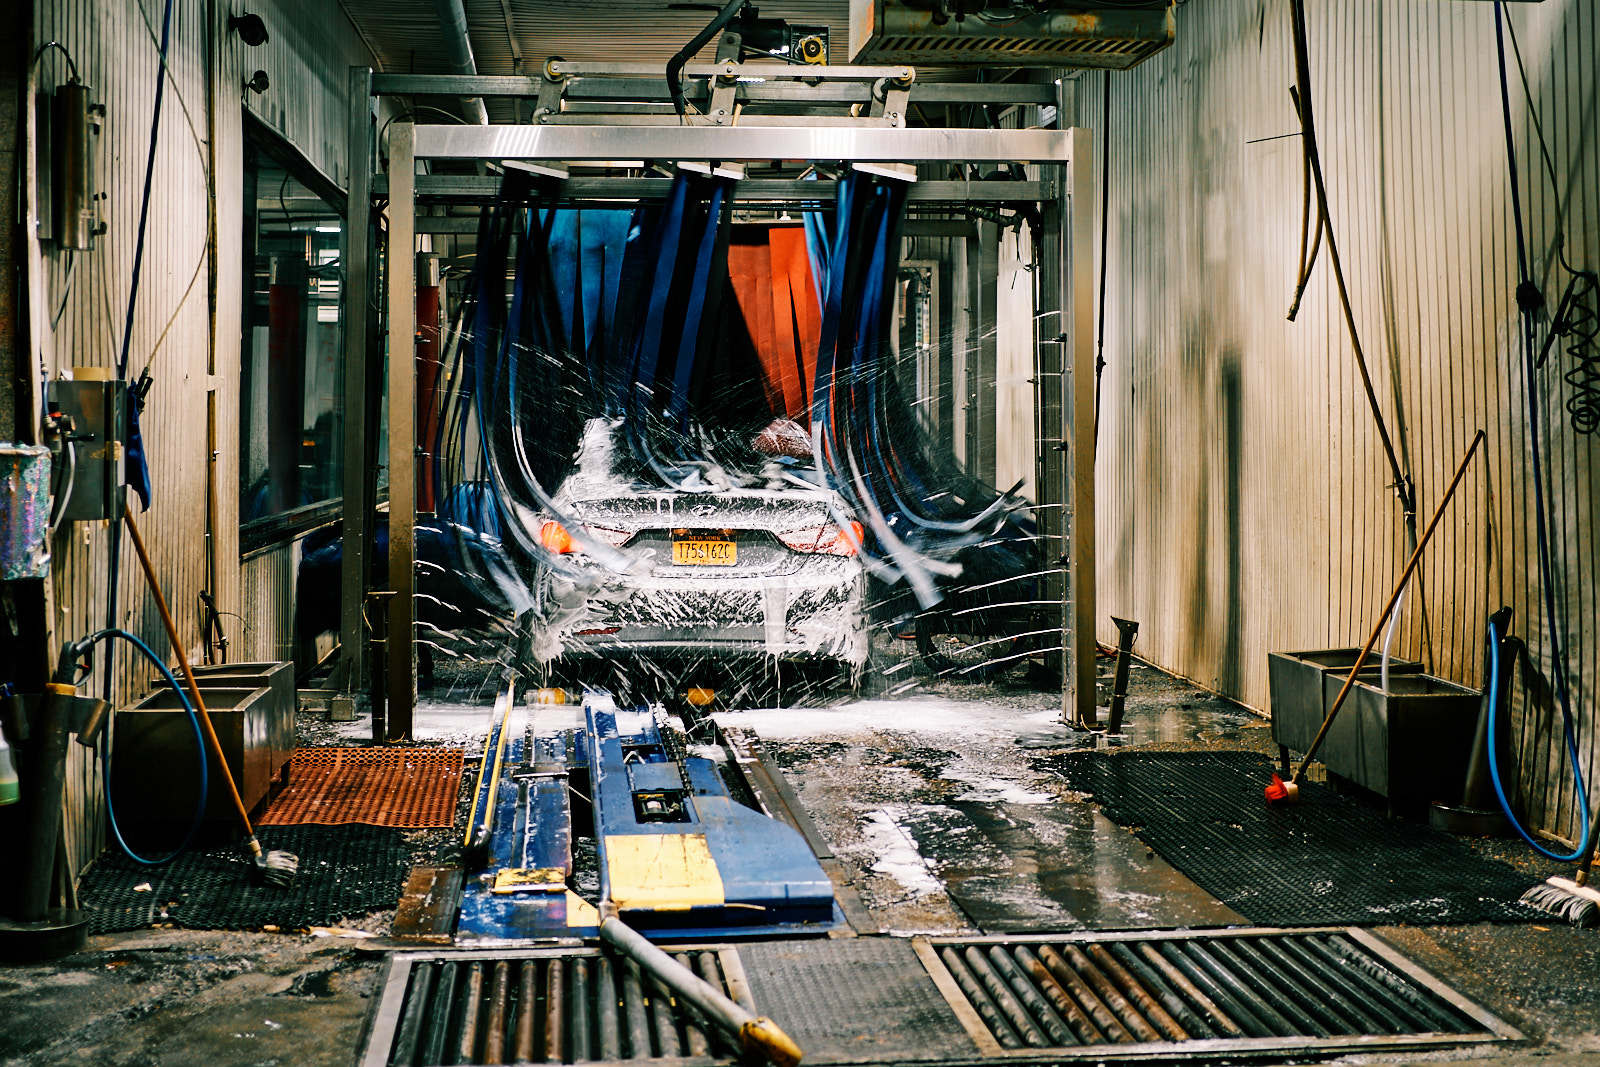 Late Nite Car Wash in Hell's Kitchen